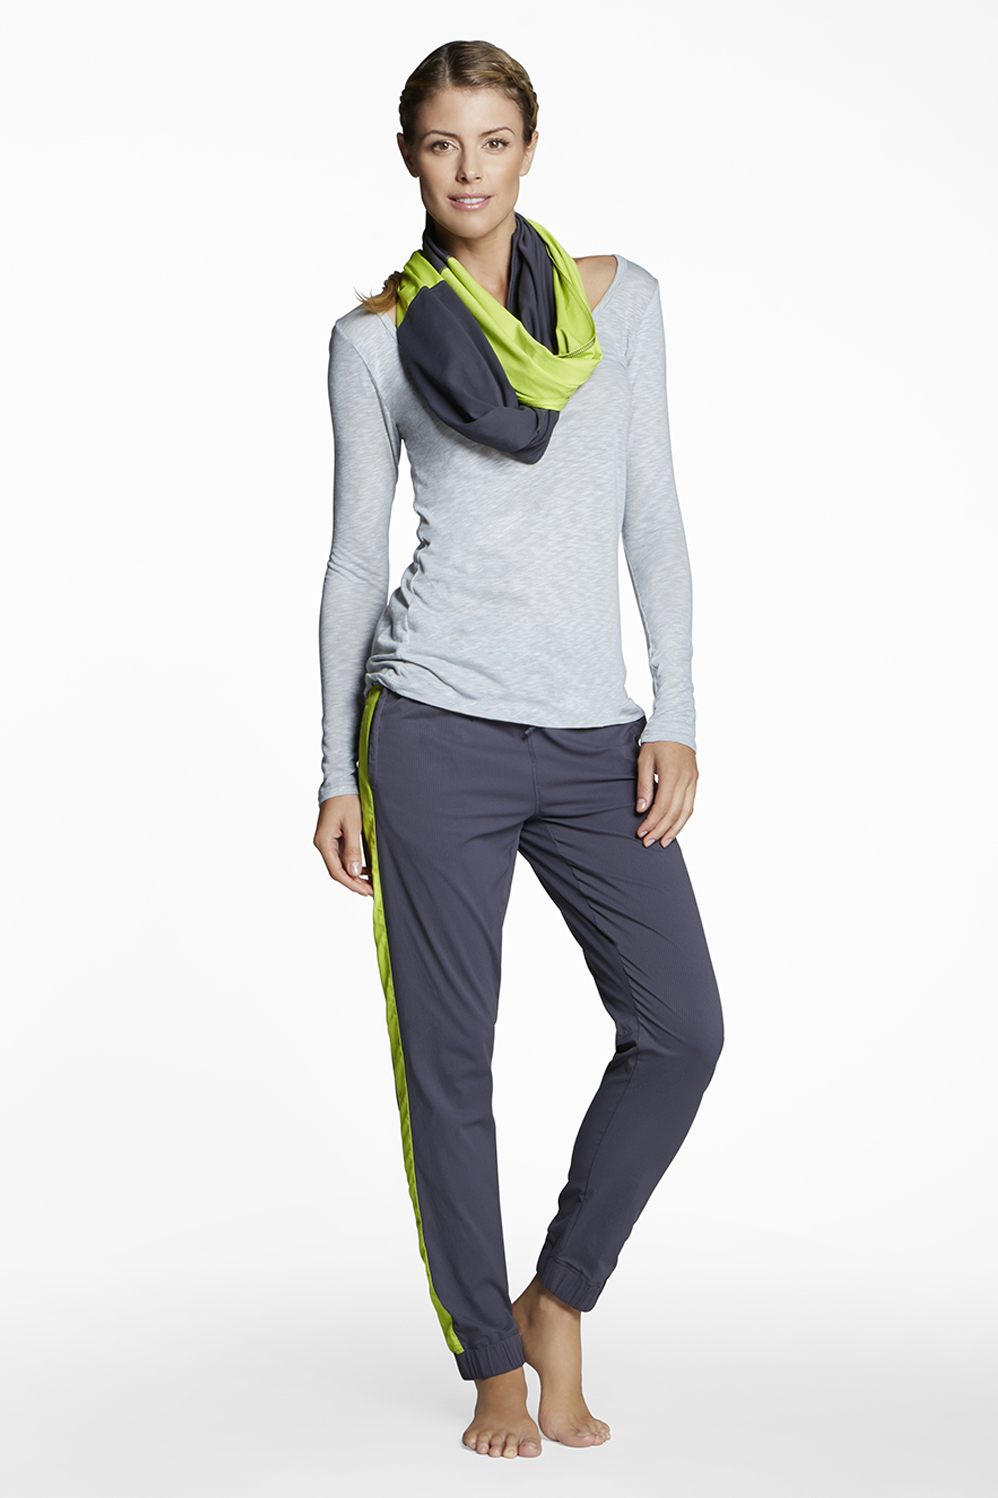 Rework Outfit Get Great Athletic Wear At Fabletics